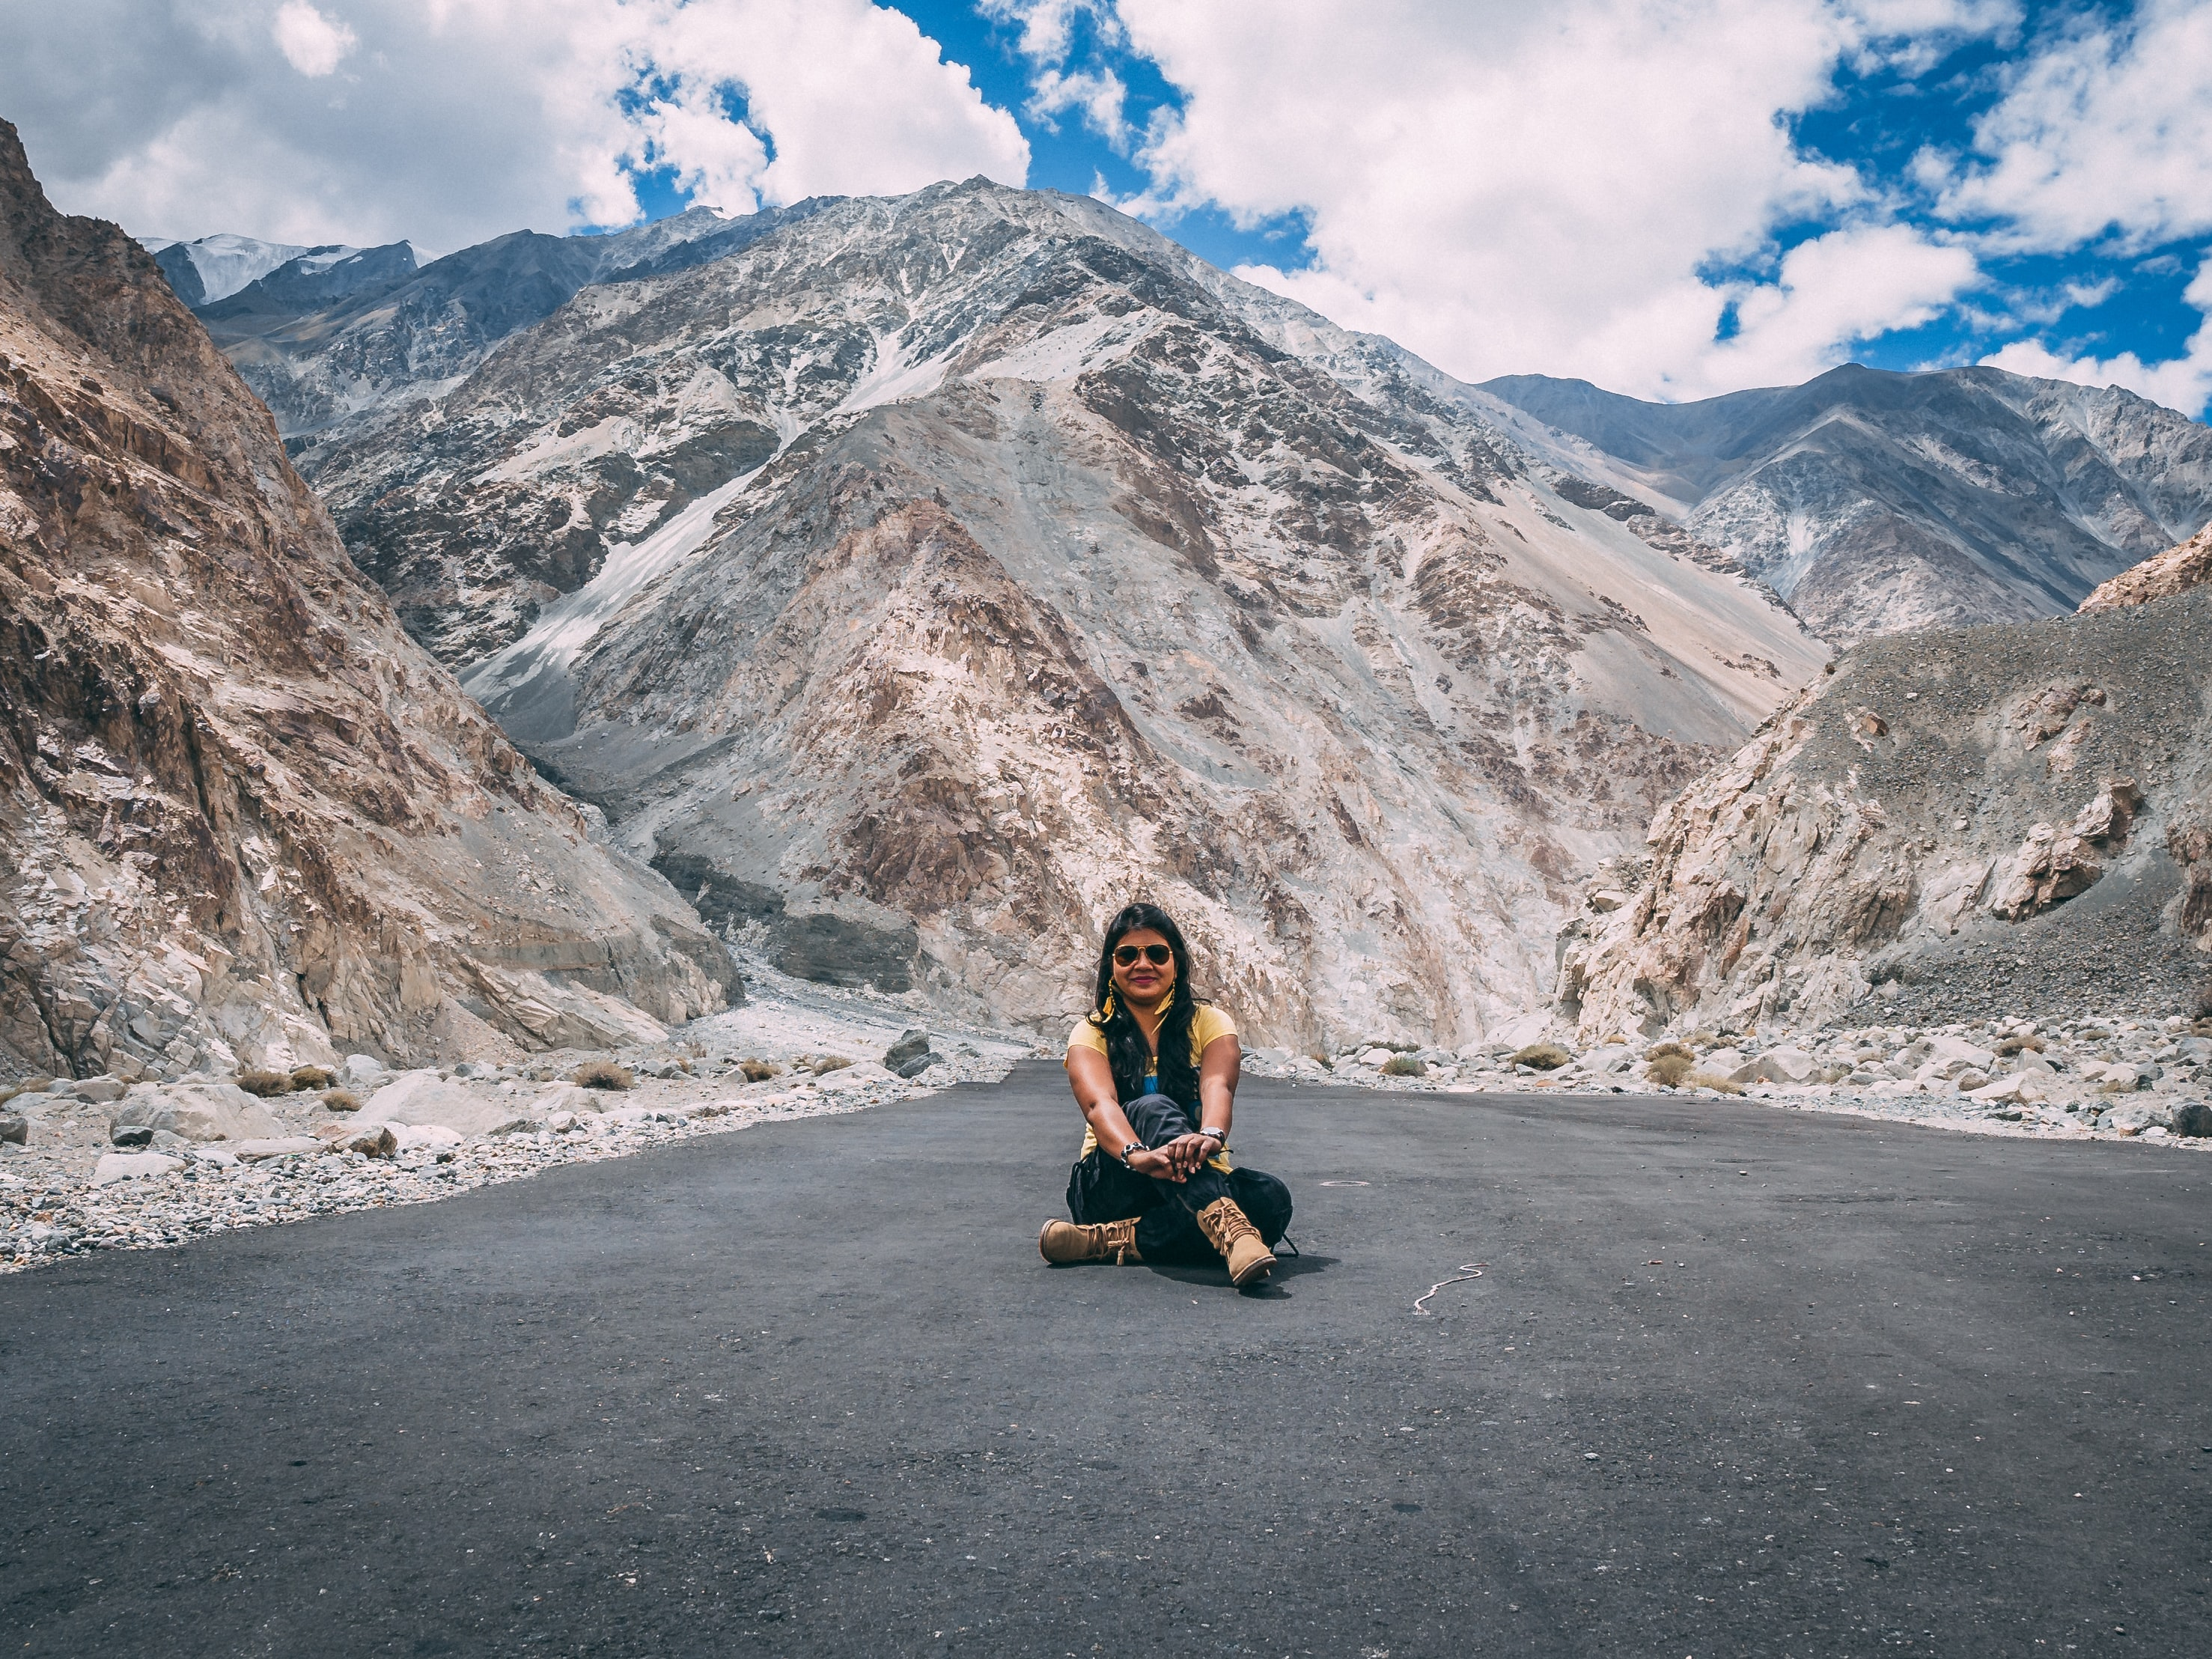 woman sitting on road near mountain during daytime